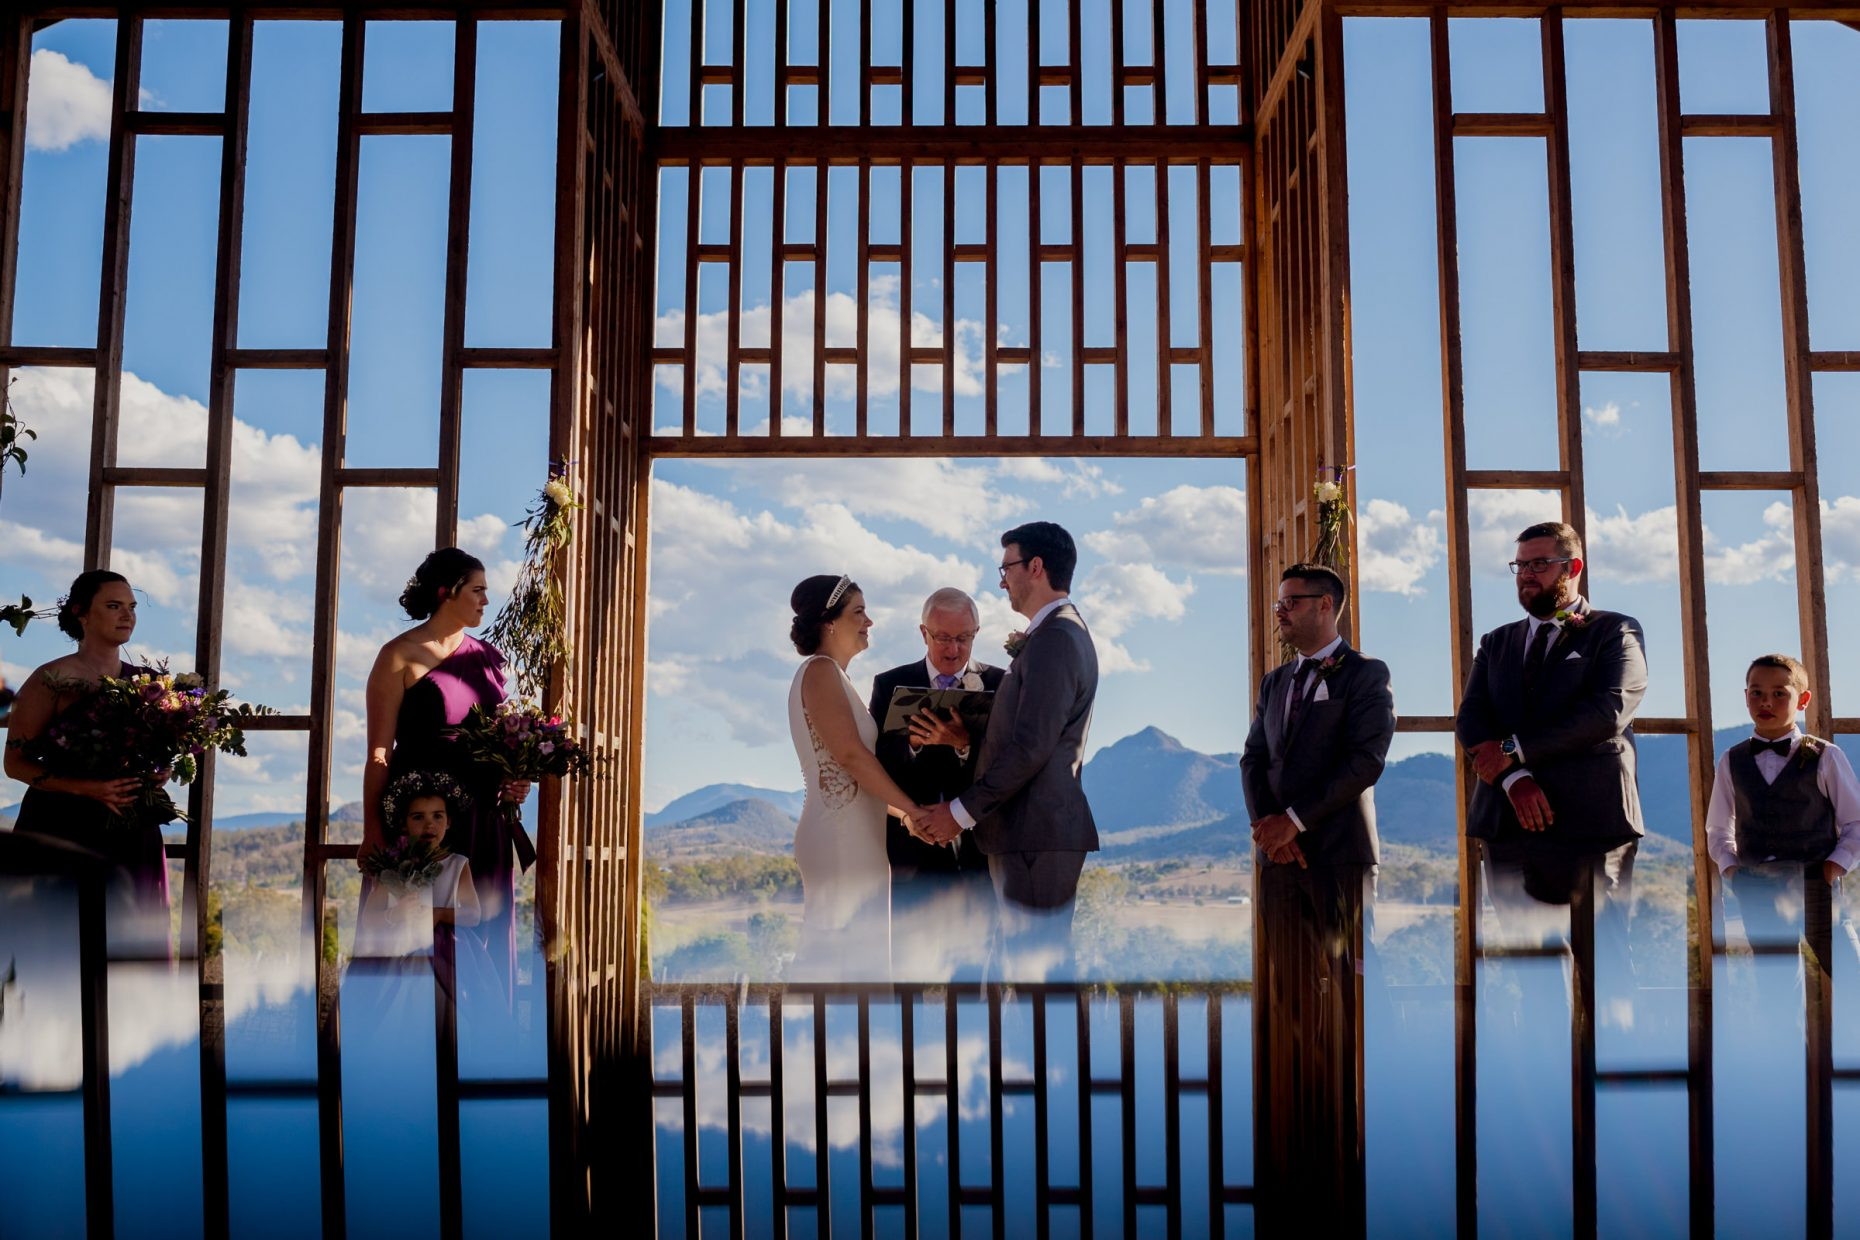 A wedding ceremony with a reflection of a wooden chapel's frame